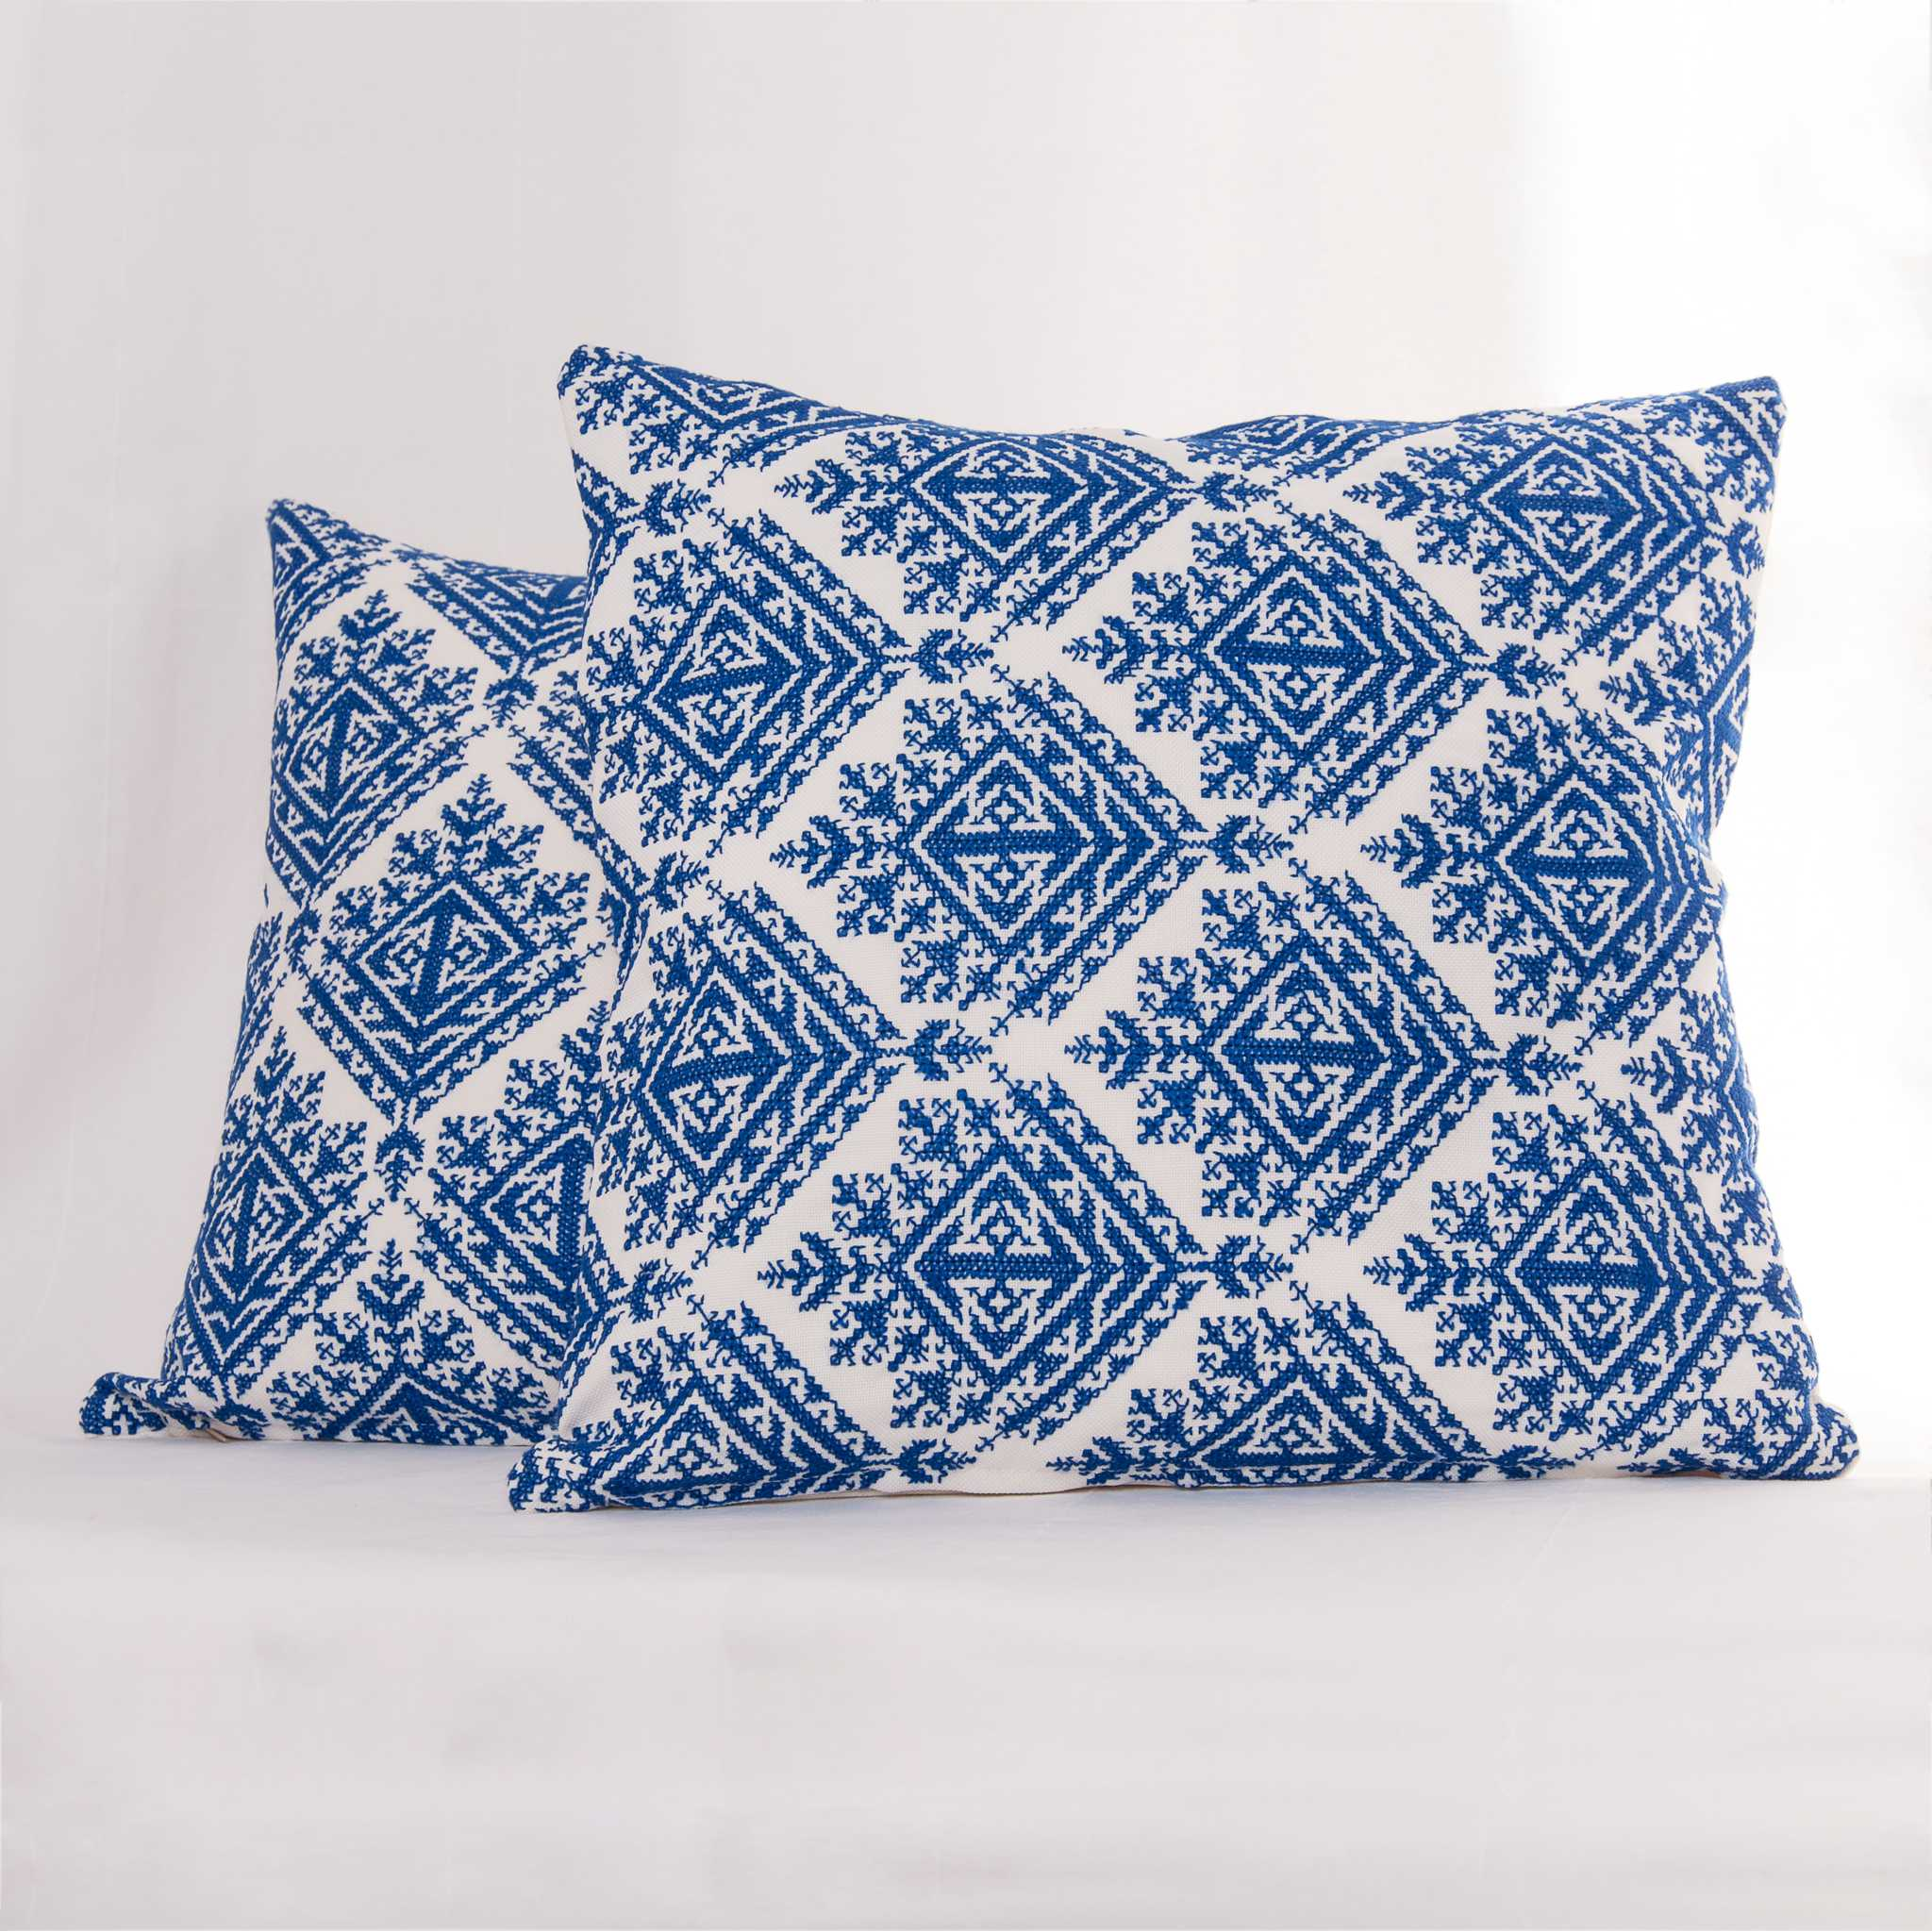 Fes-Embroidery Cushion Cover